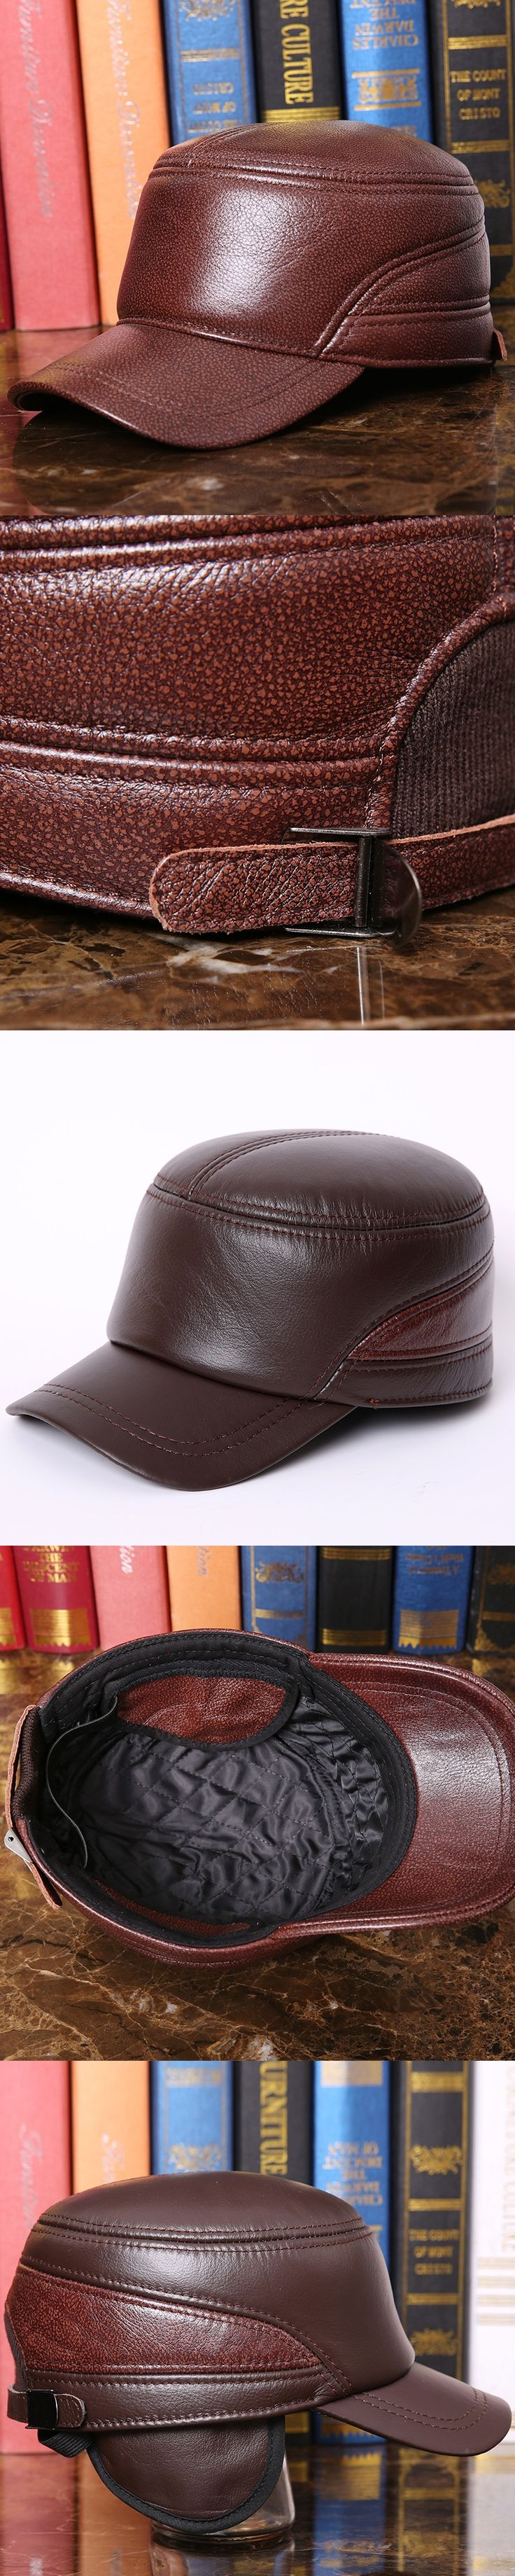 Fashion Hat Genuine Cap New Arrival Men's Genuine Leather Hat Adult Quinquagenarian Thermal Ear Protection Hat Peaked Cap B-7277